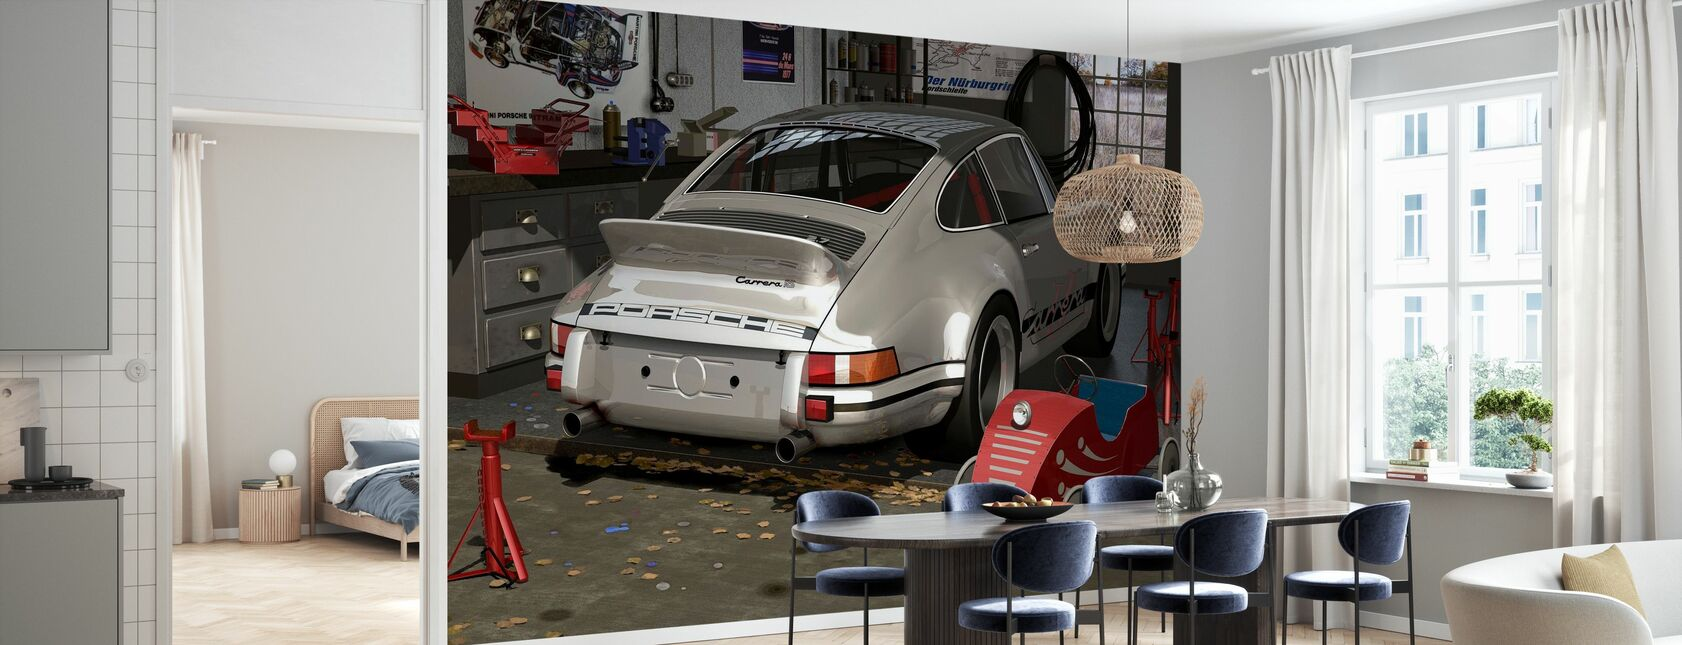 My first and second car - Wallpaper - Kitchen